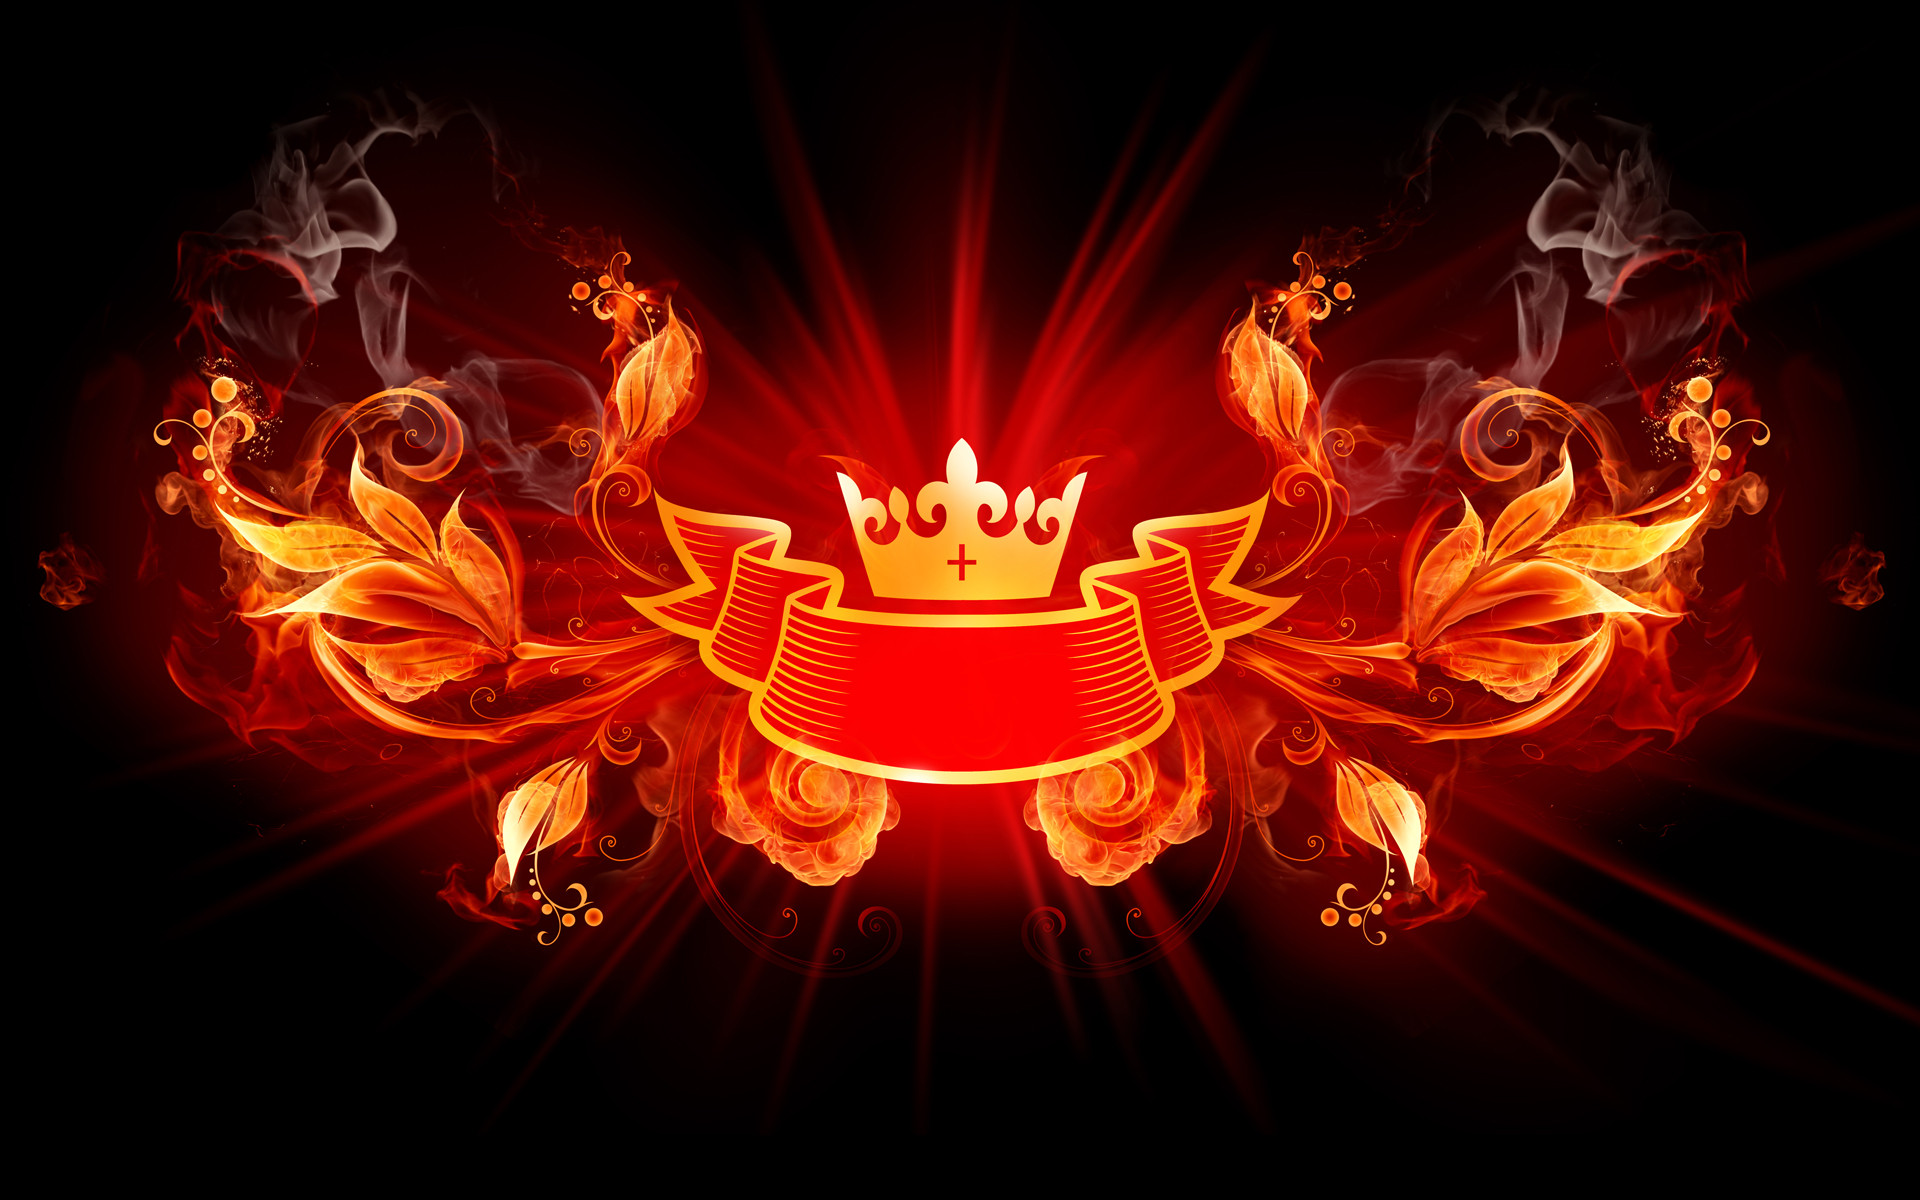 free crown wallpaper 22202